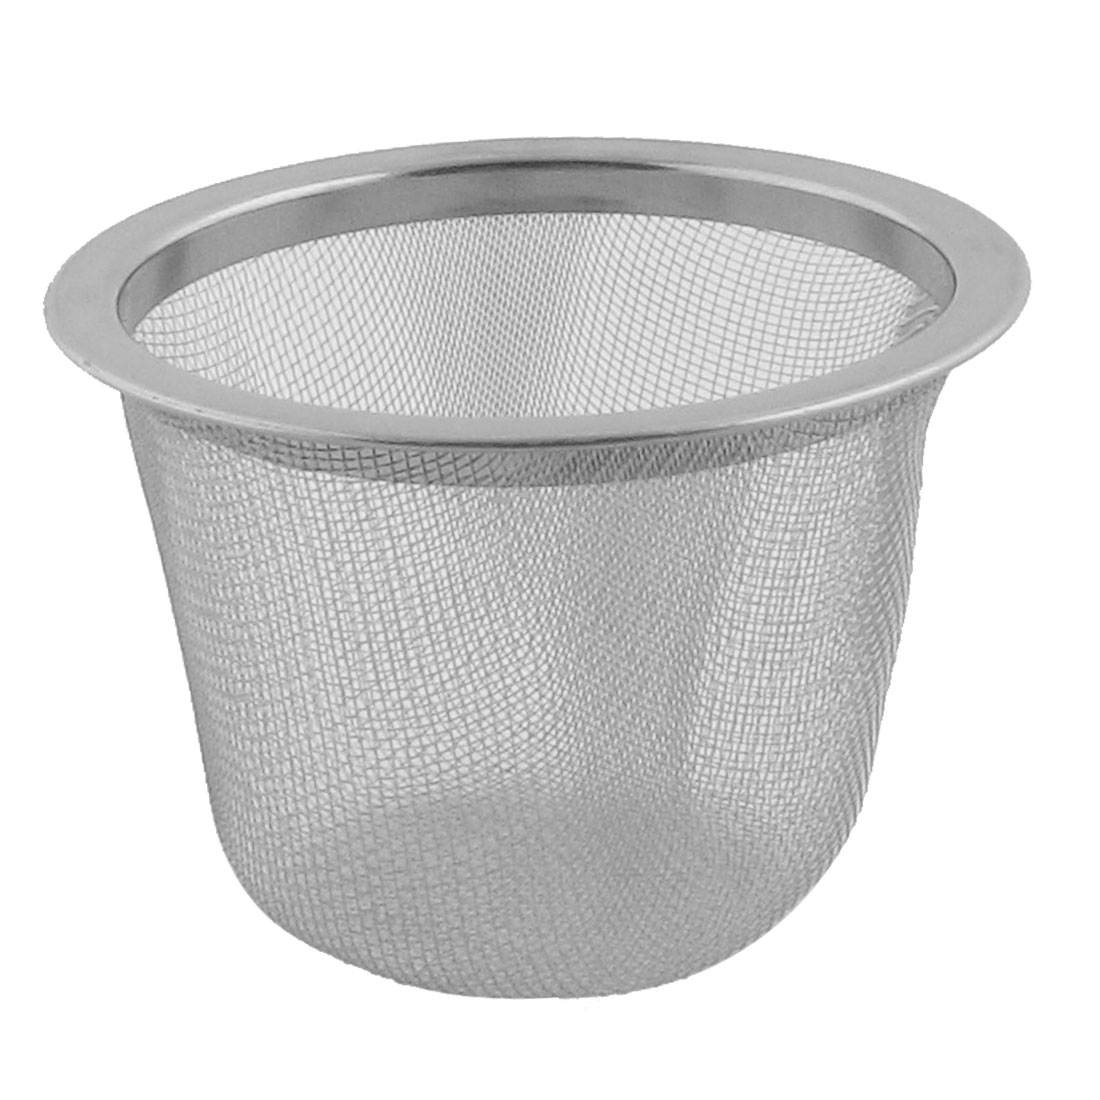 Household Metal Mesh Perforated Funnel Tea Filter Strainer Infuser Silver Tone by